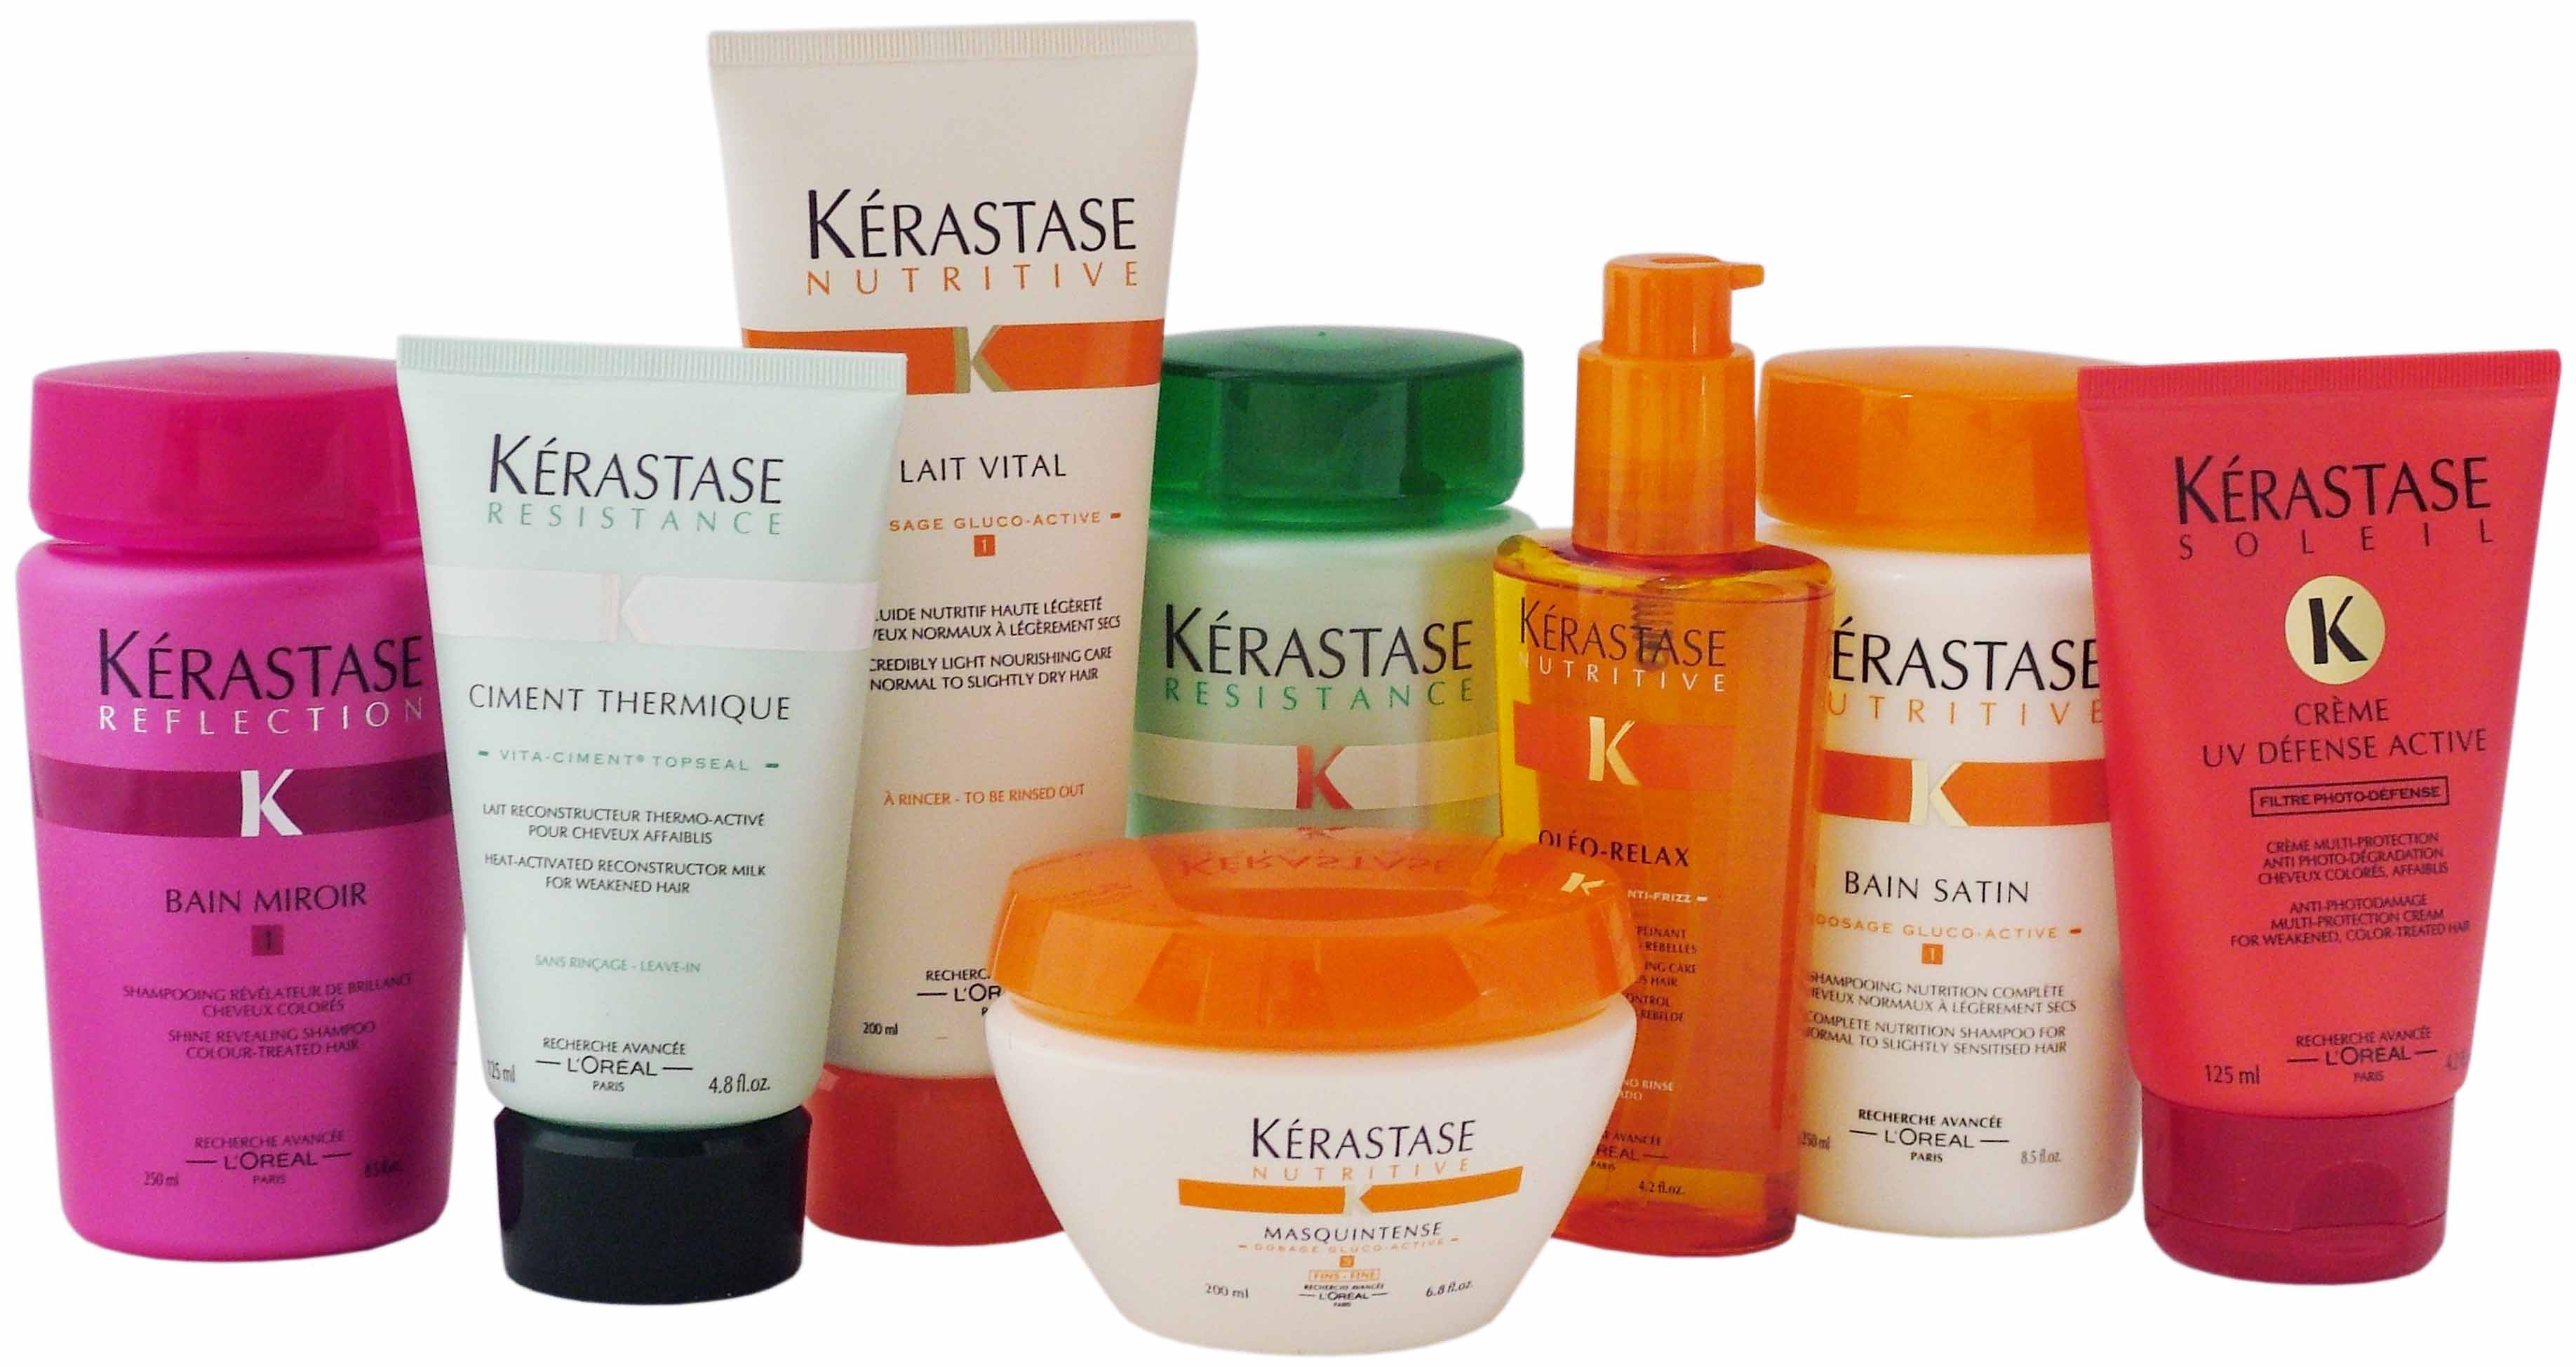 Productes Kérastase a Cosmetic Club